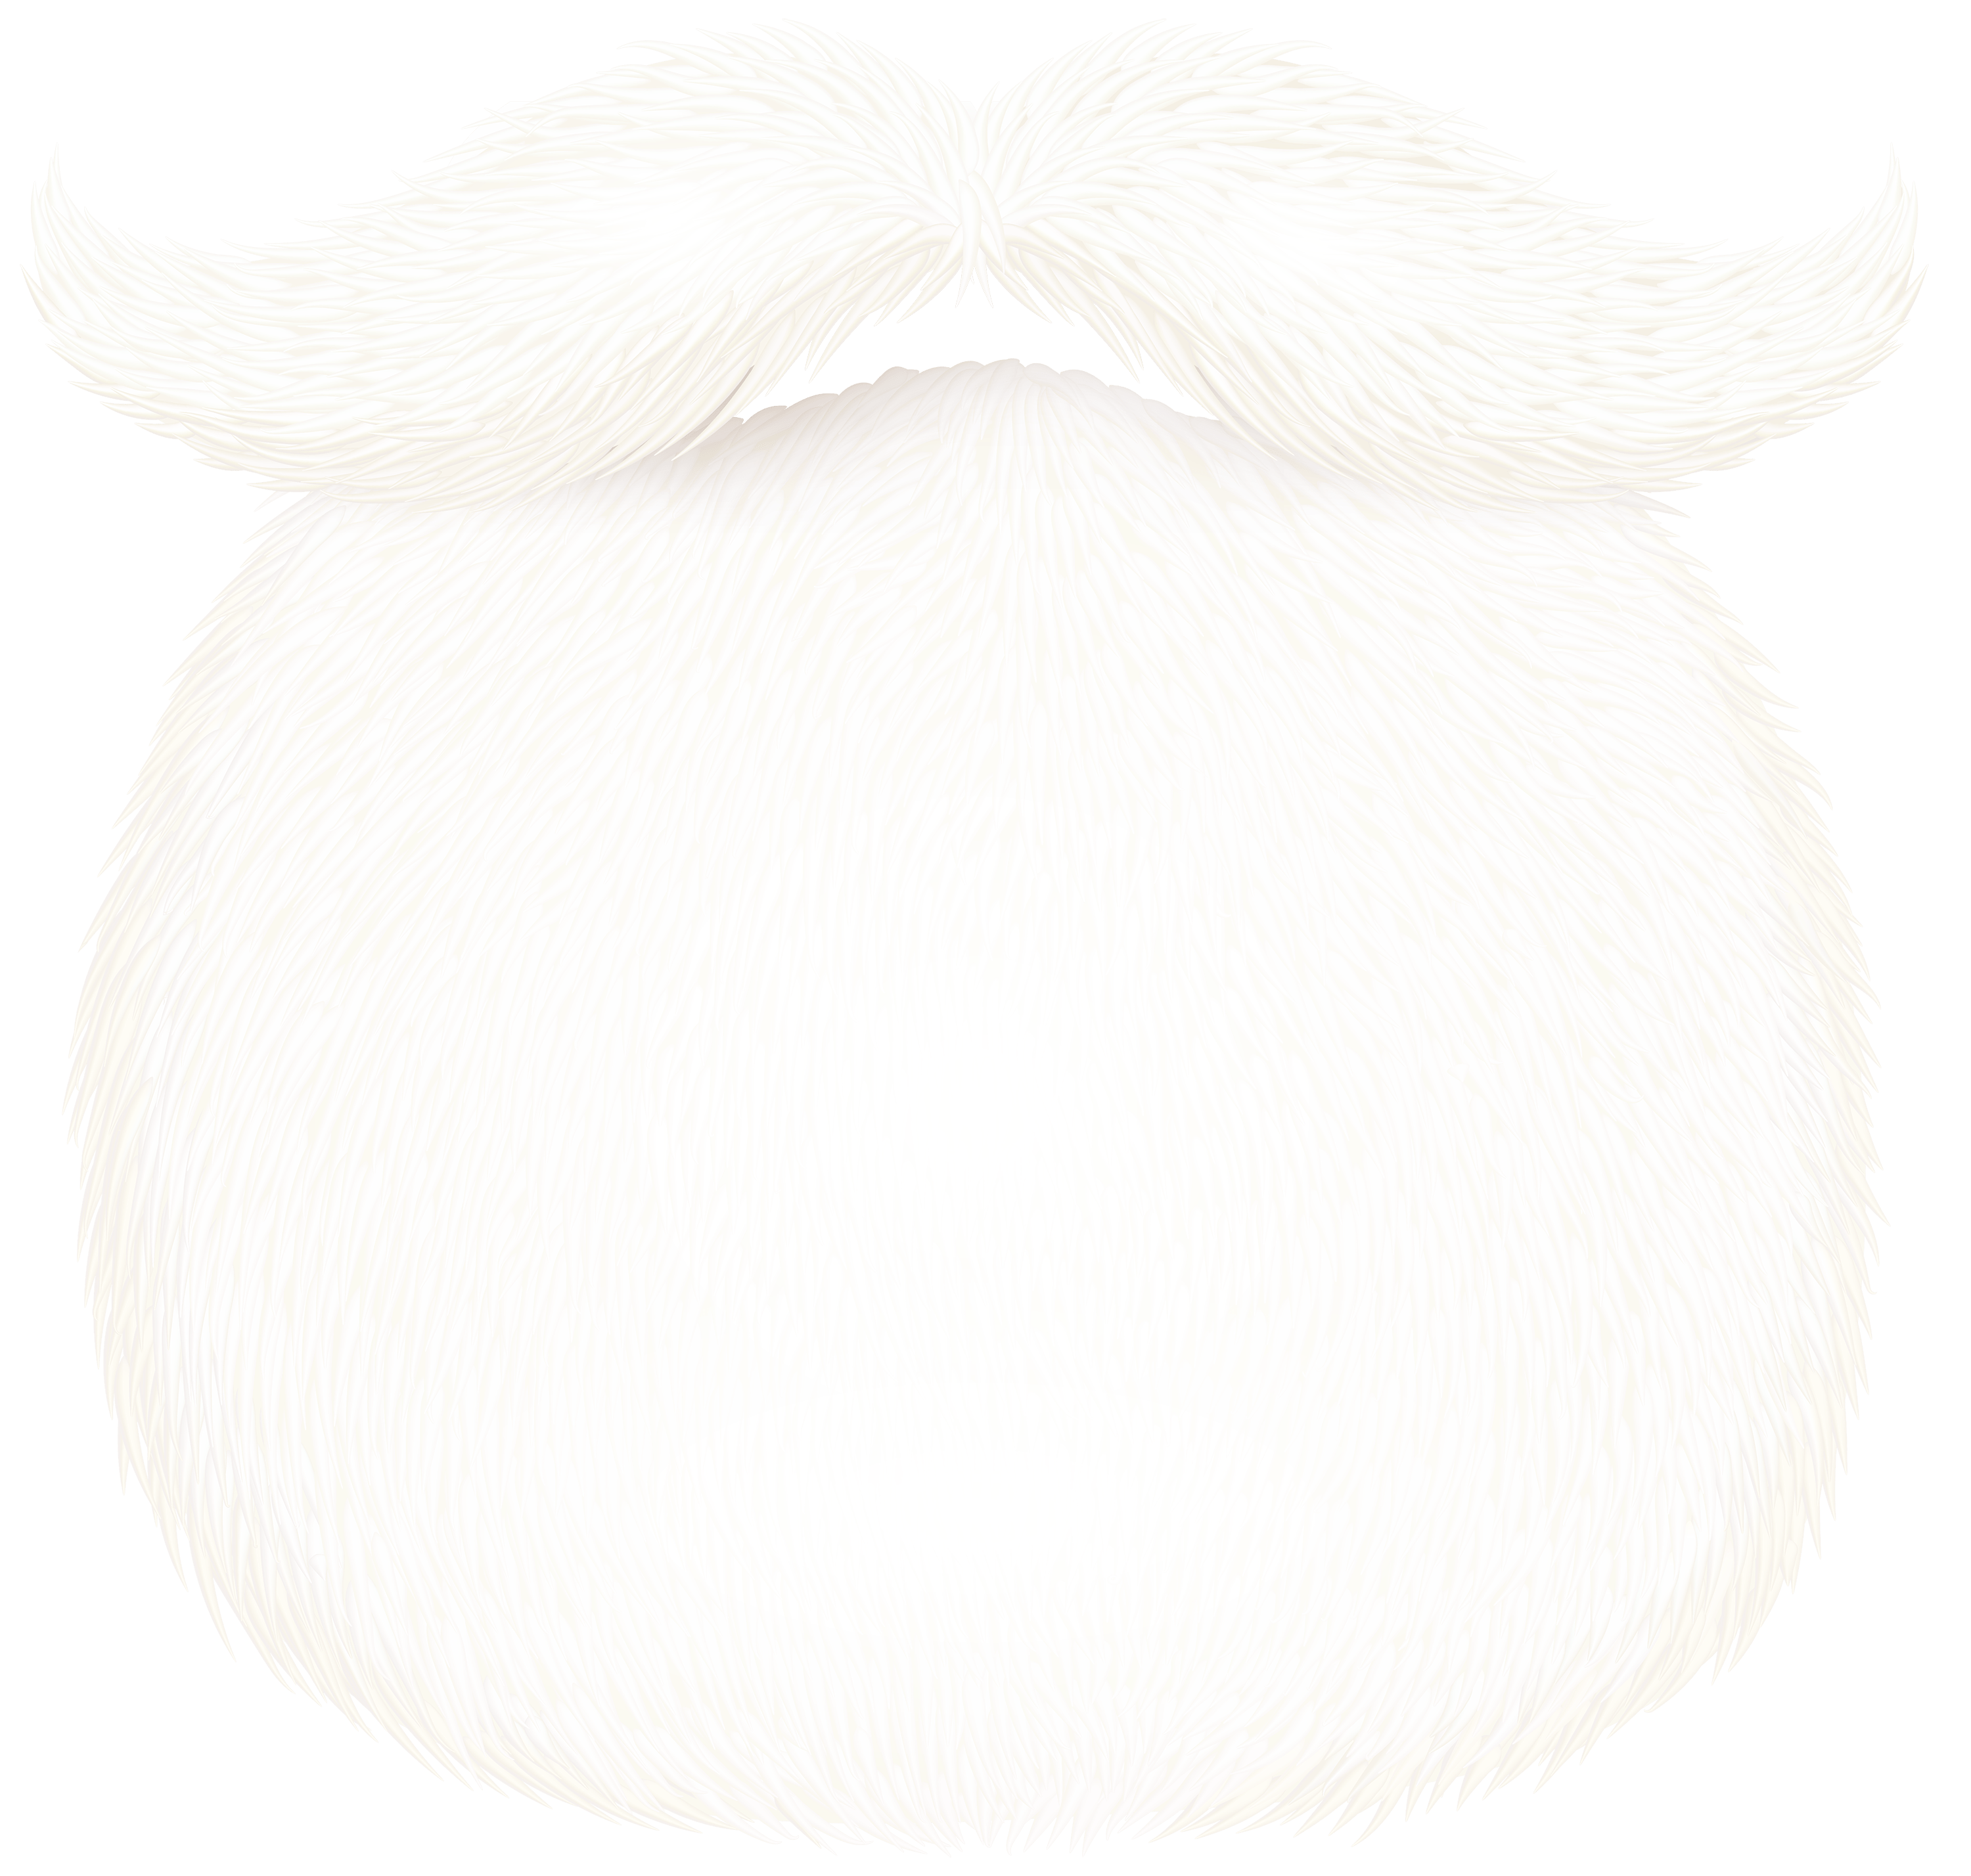 image freeuse download Beard clipart minimalist. Collection of free begirded